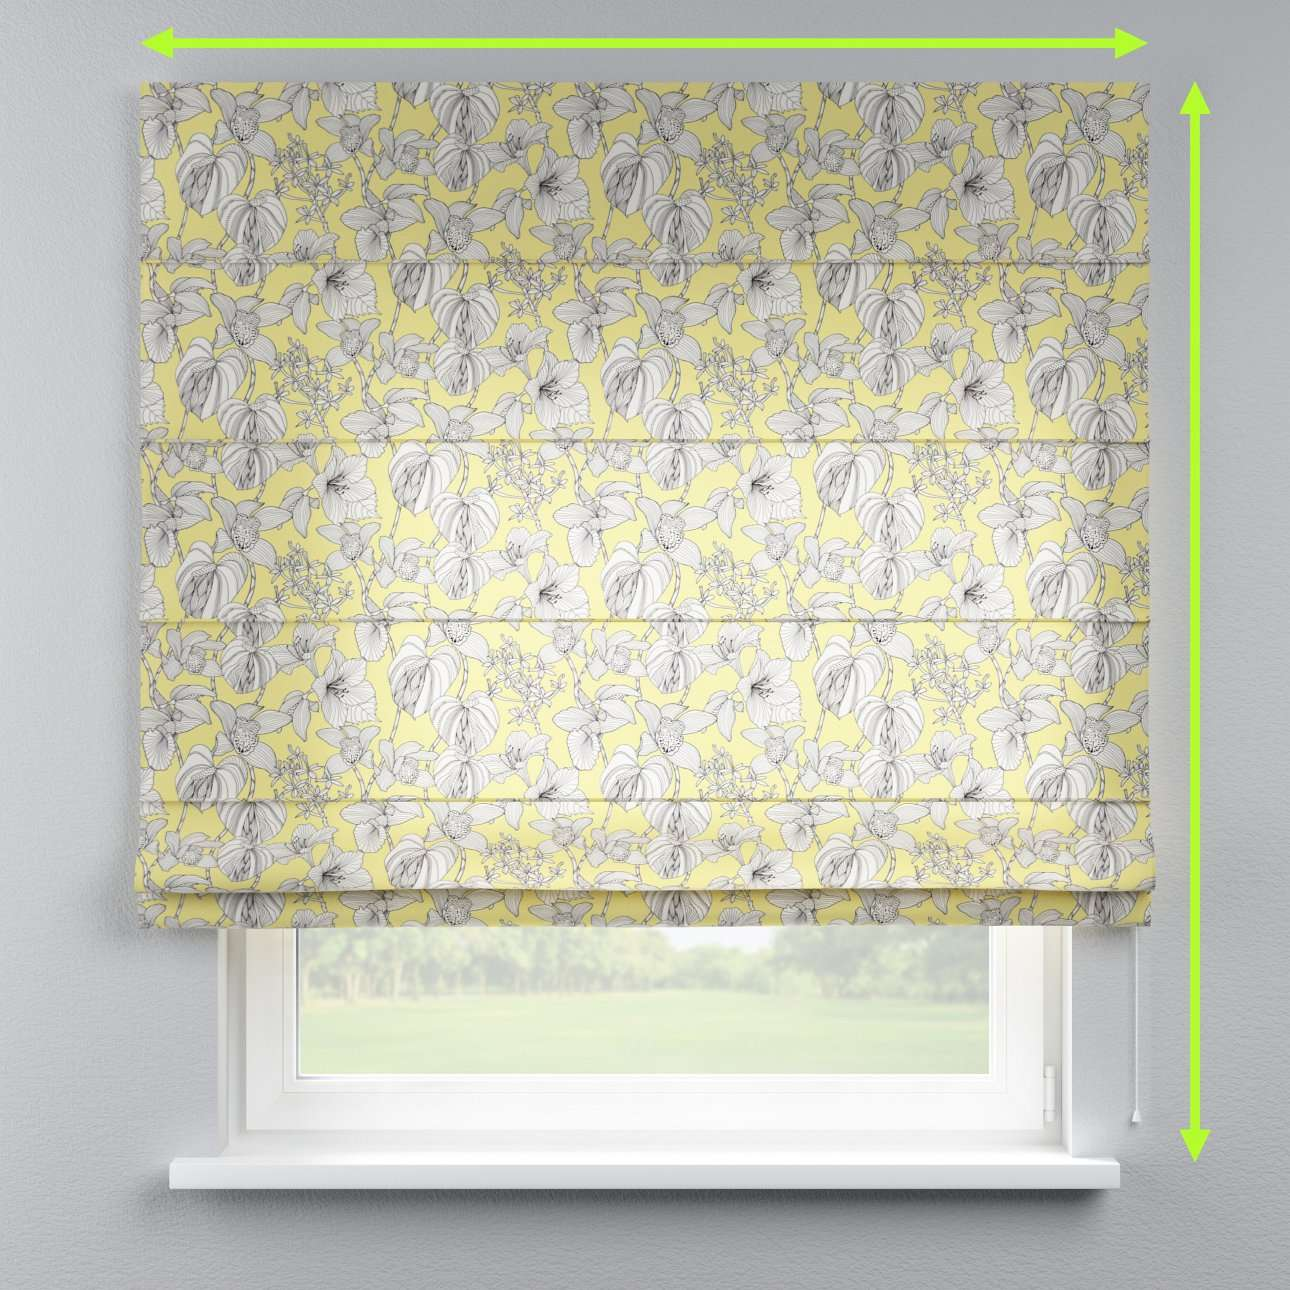 Capri roman blind in collection Brooklyn, fabric: 137-78